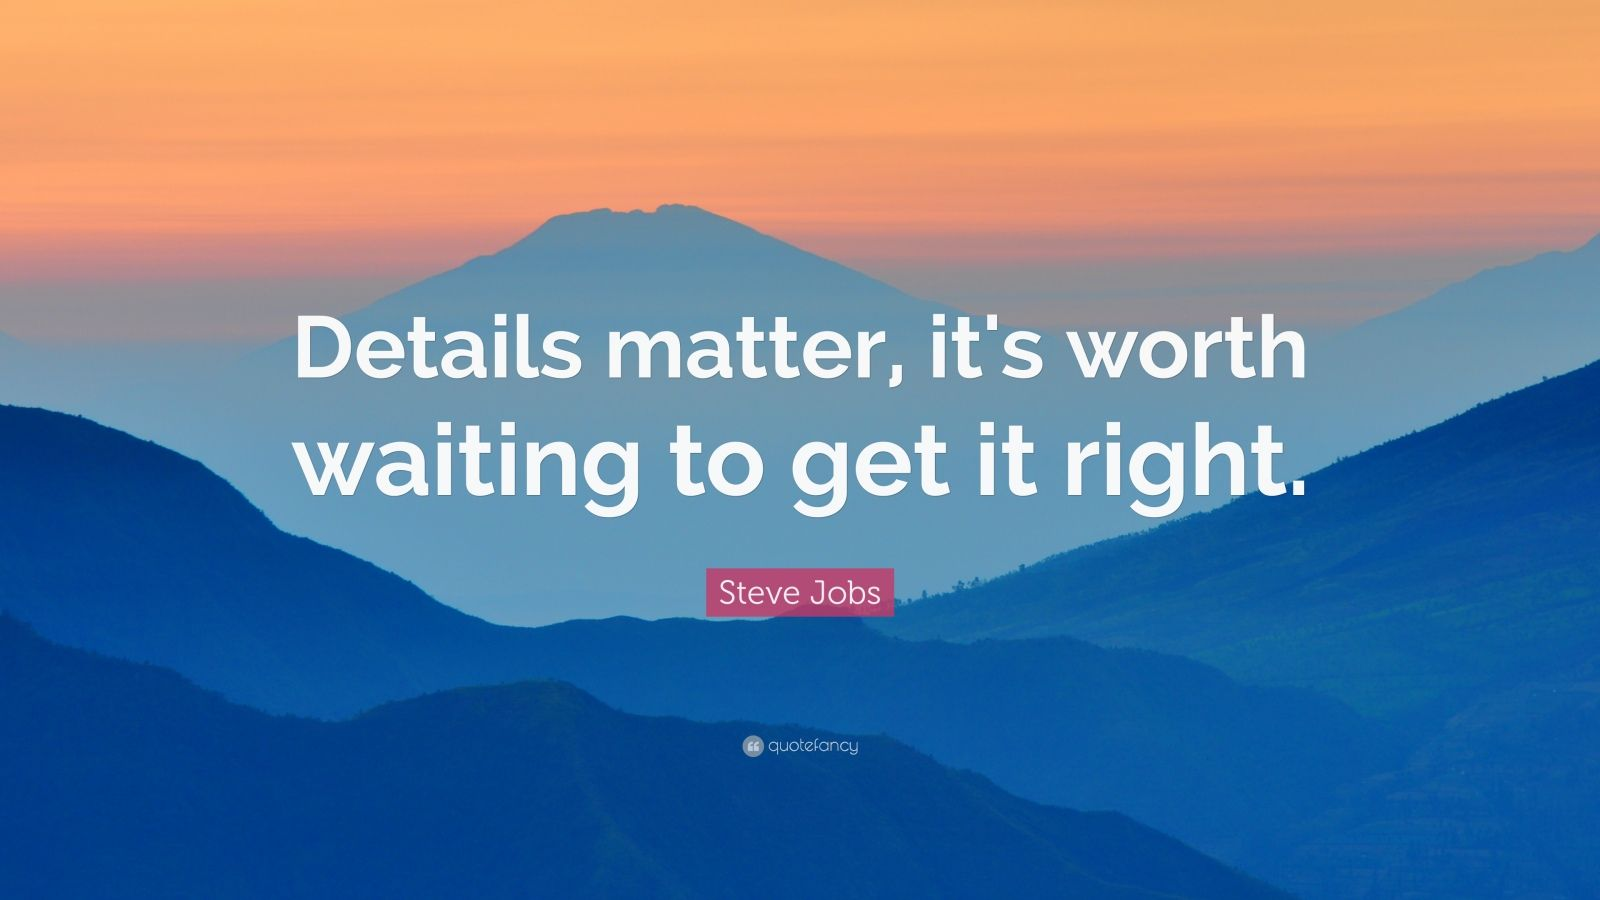 """Elon Musk Quotes >> Steve Jobs Quote: """"Details matter, it's worth waiting to ..."""